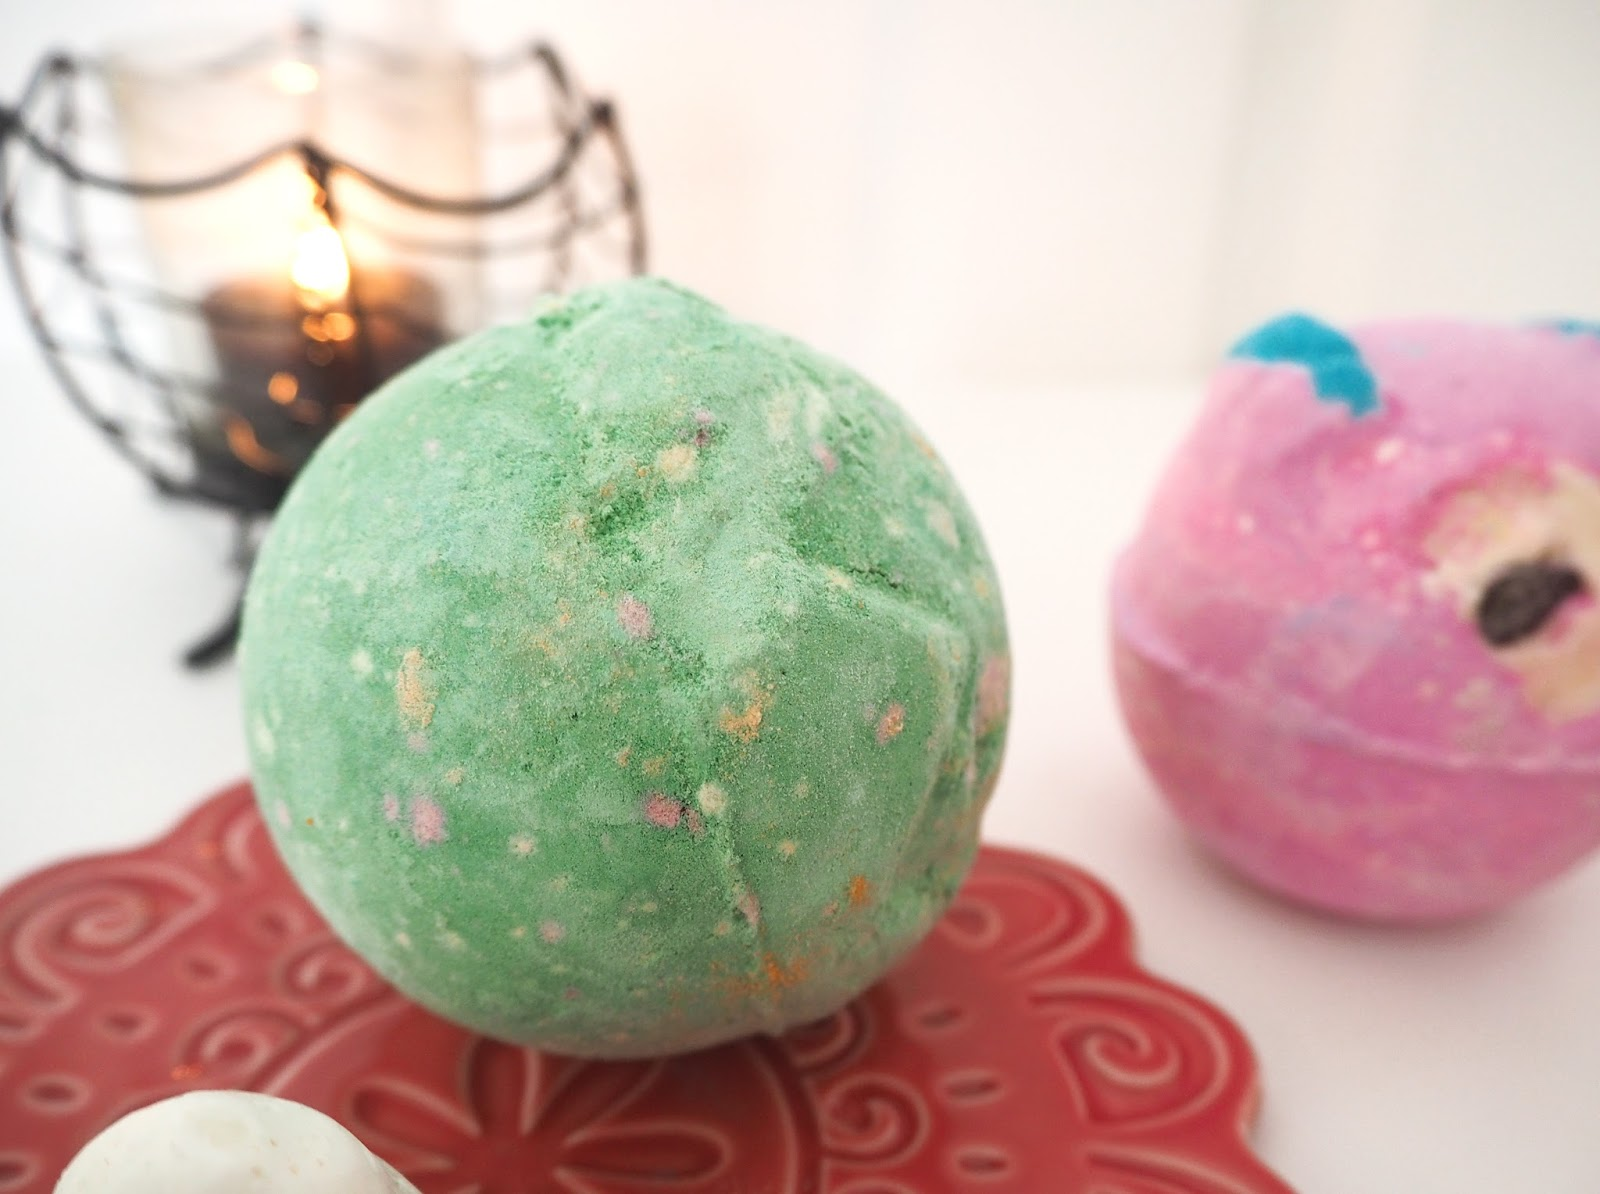 Lush Halloween Collection 2016, Katie Kirk Loves, Lord of Misrule Bath Bomb, Beauty Blogger, Bath Products, Lush UK